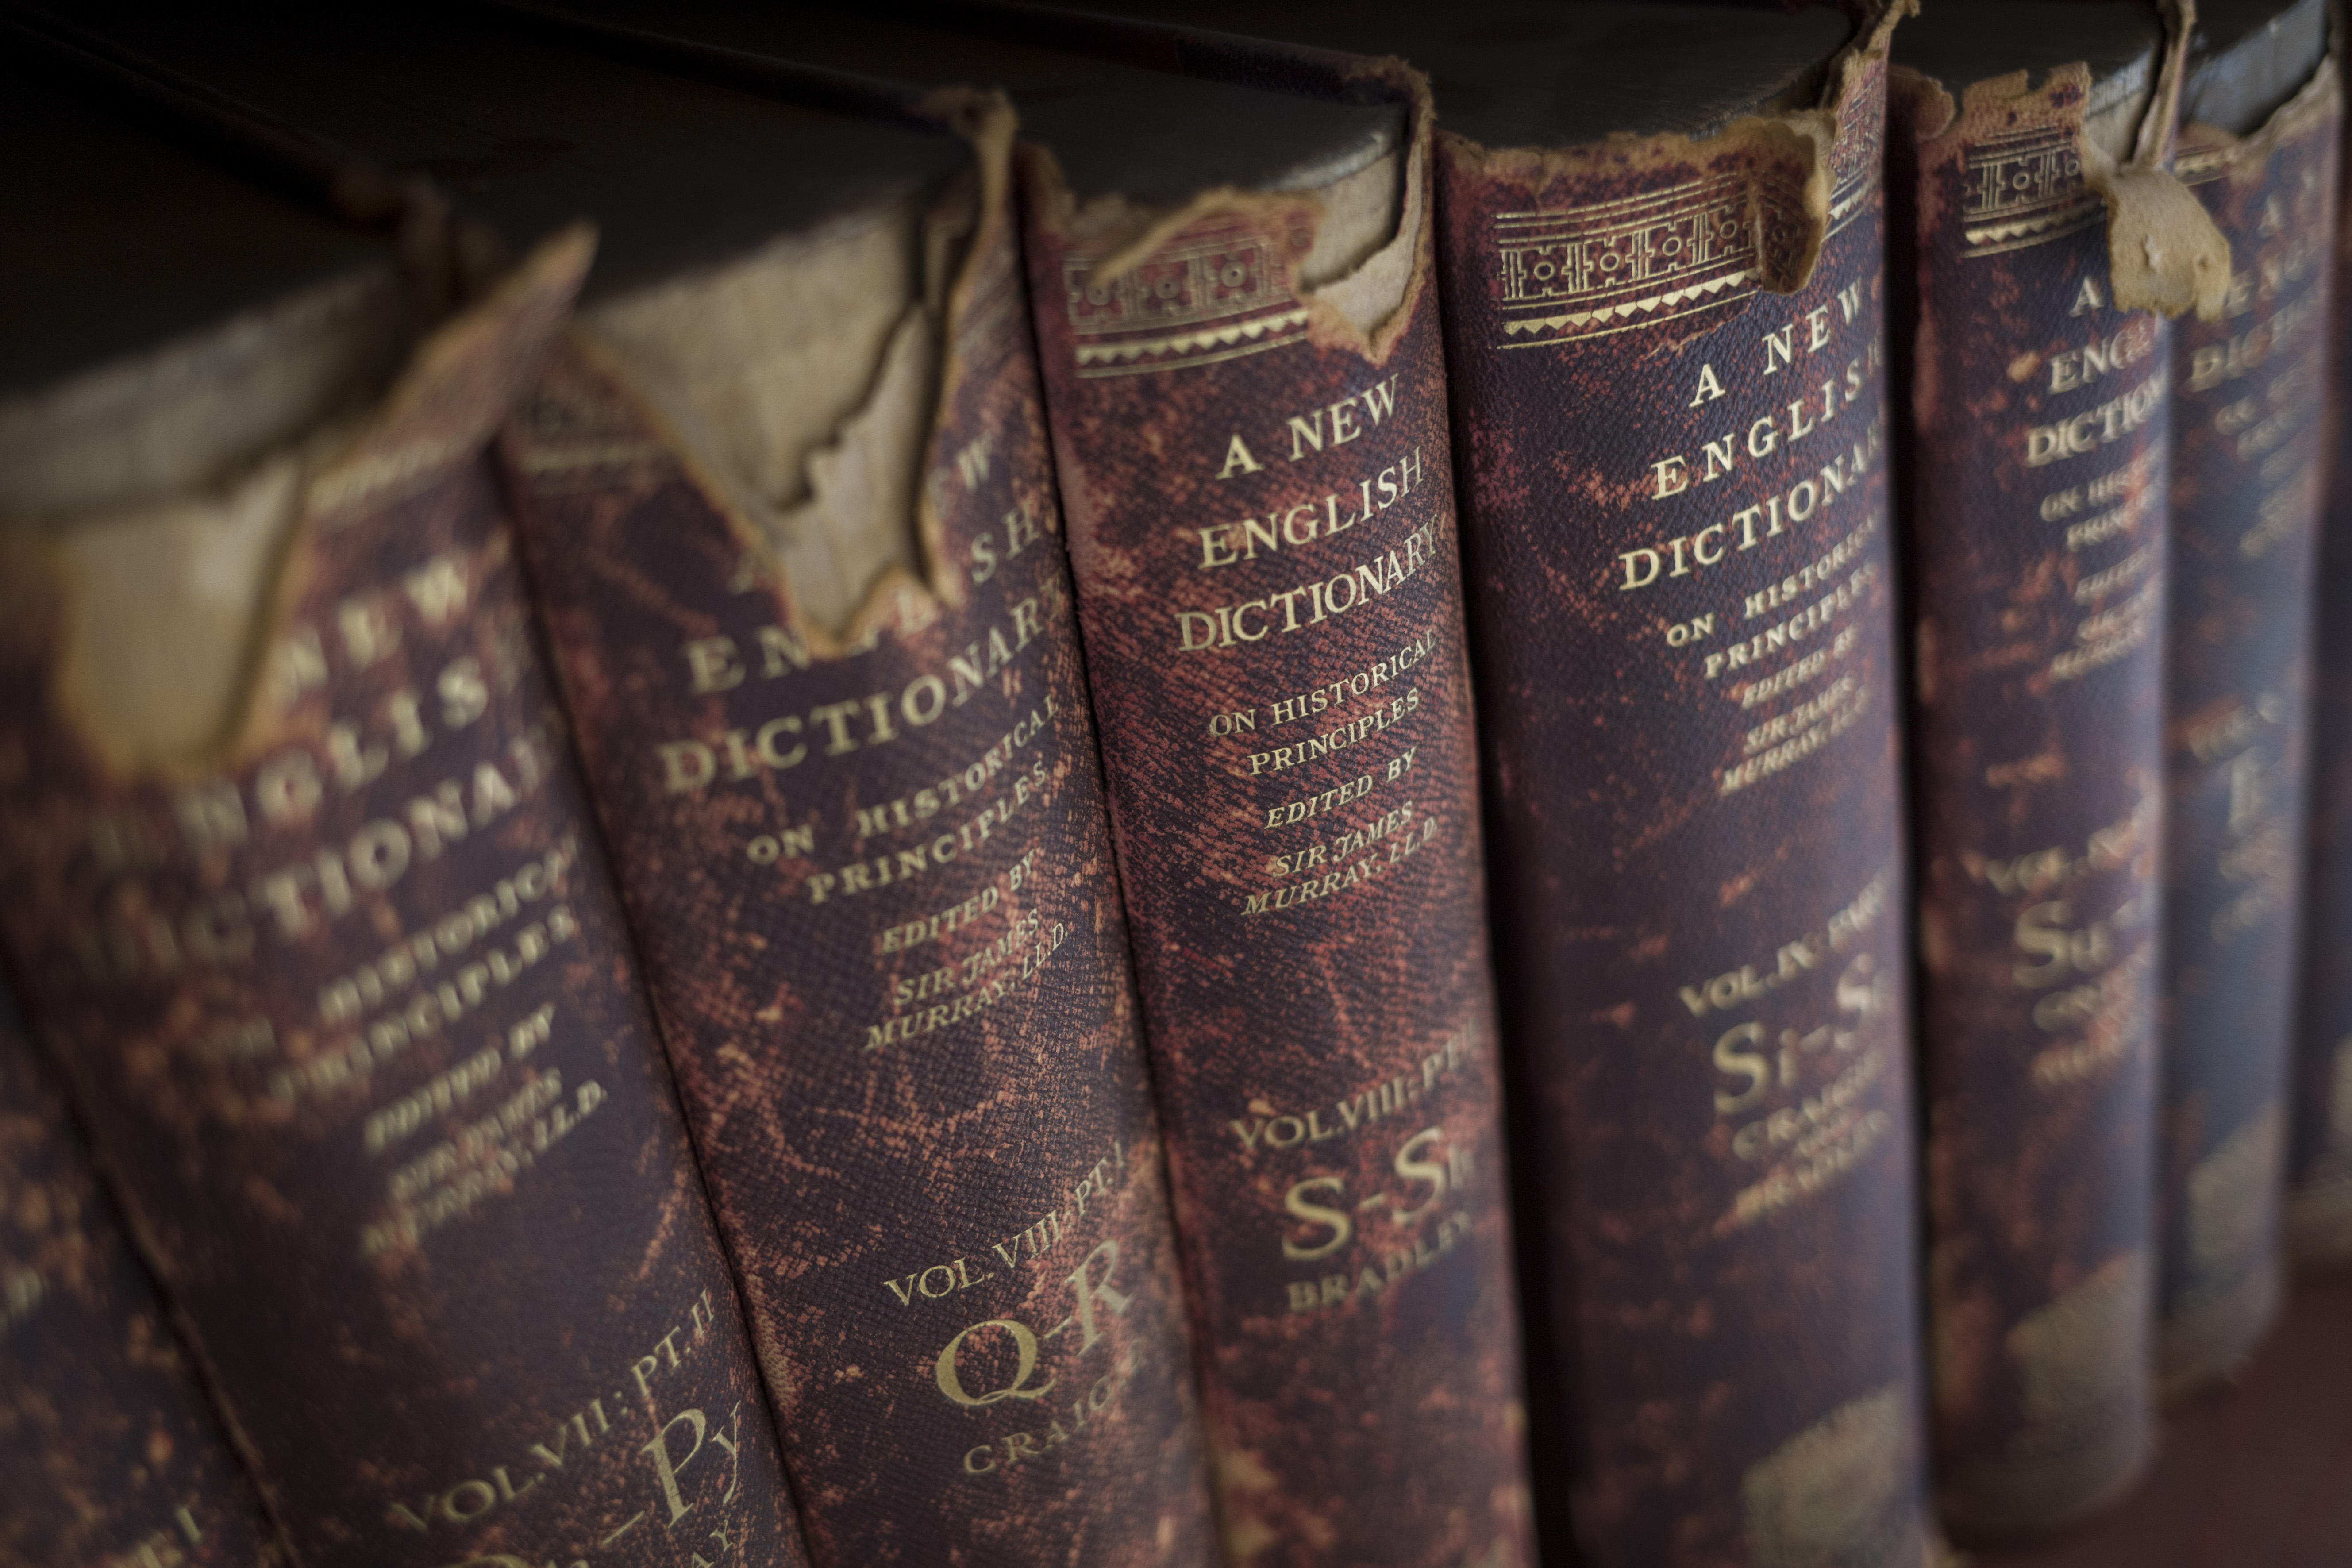 The spines of several antique books standing on a shelf.